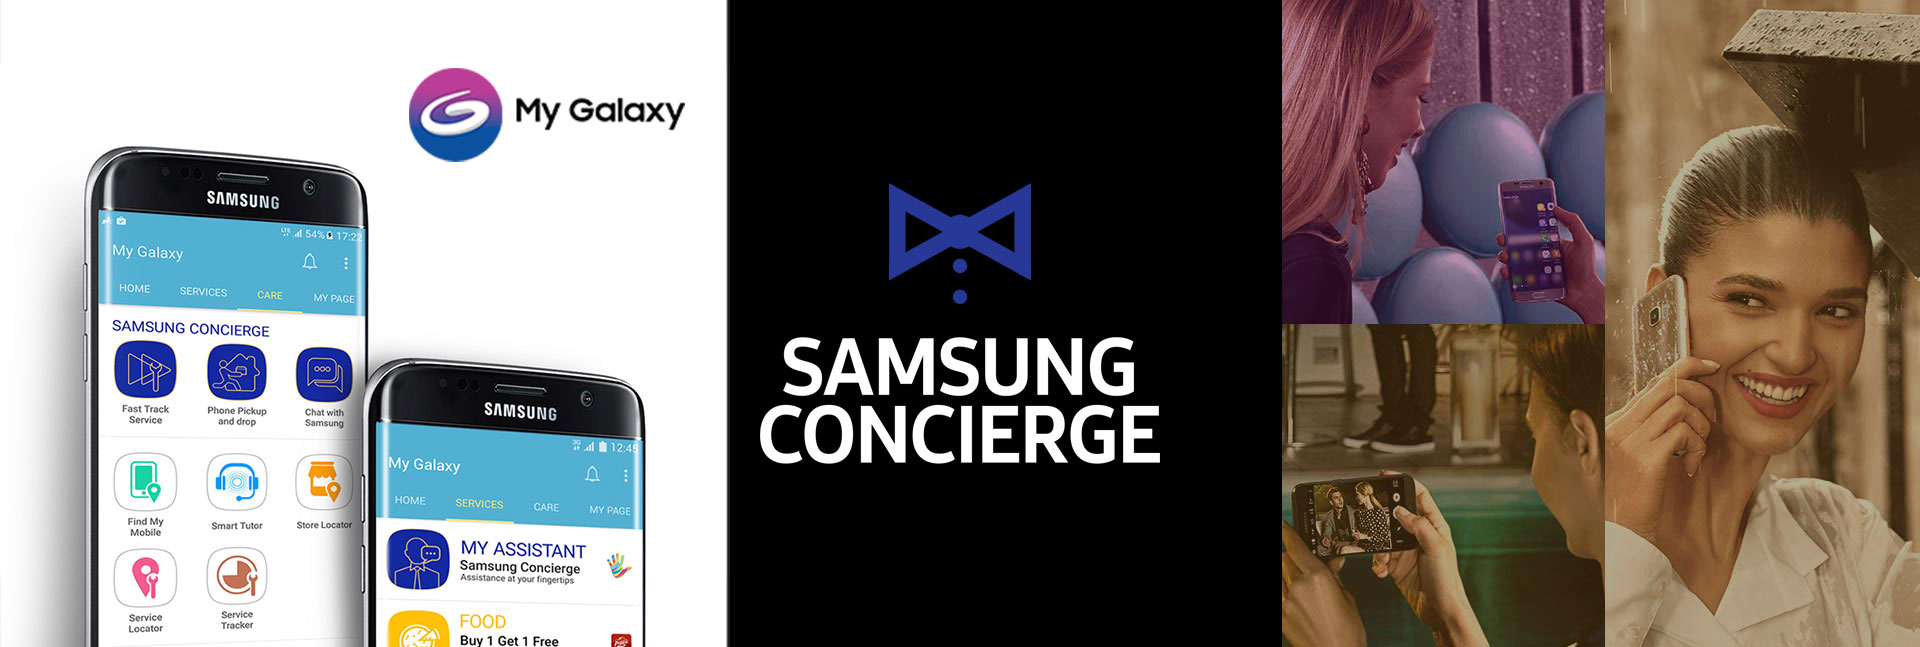 Samsung Concierge powered by My Galaxy